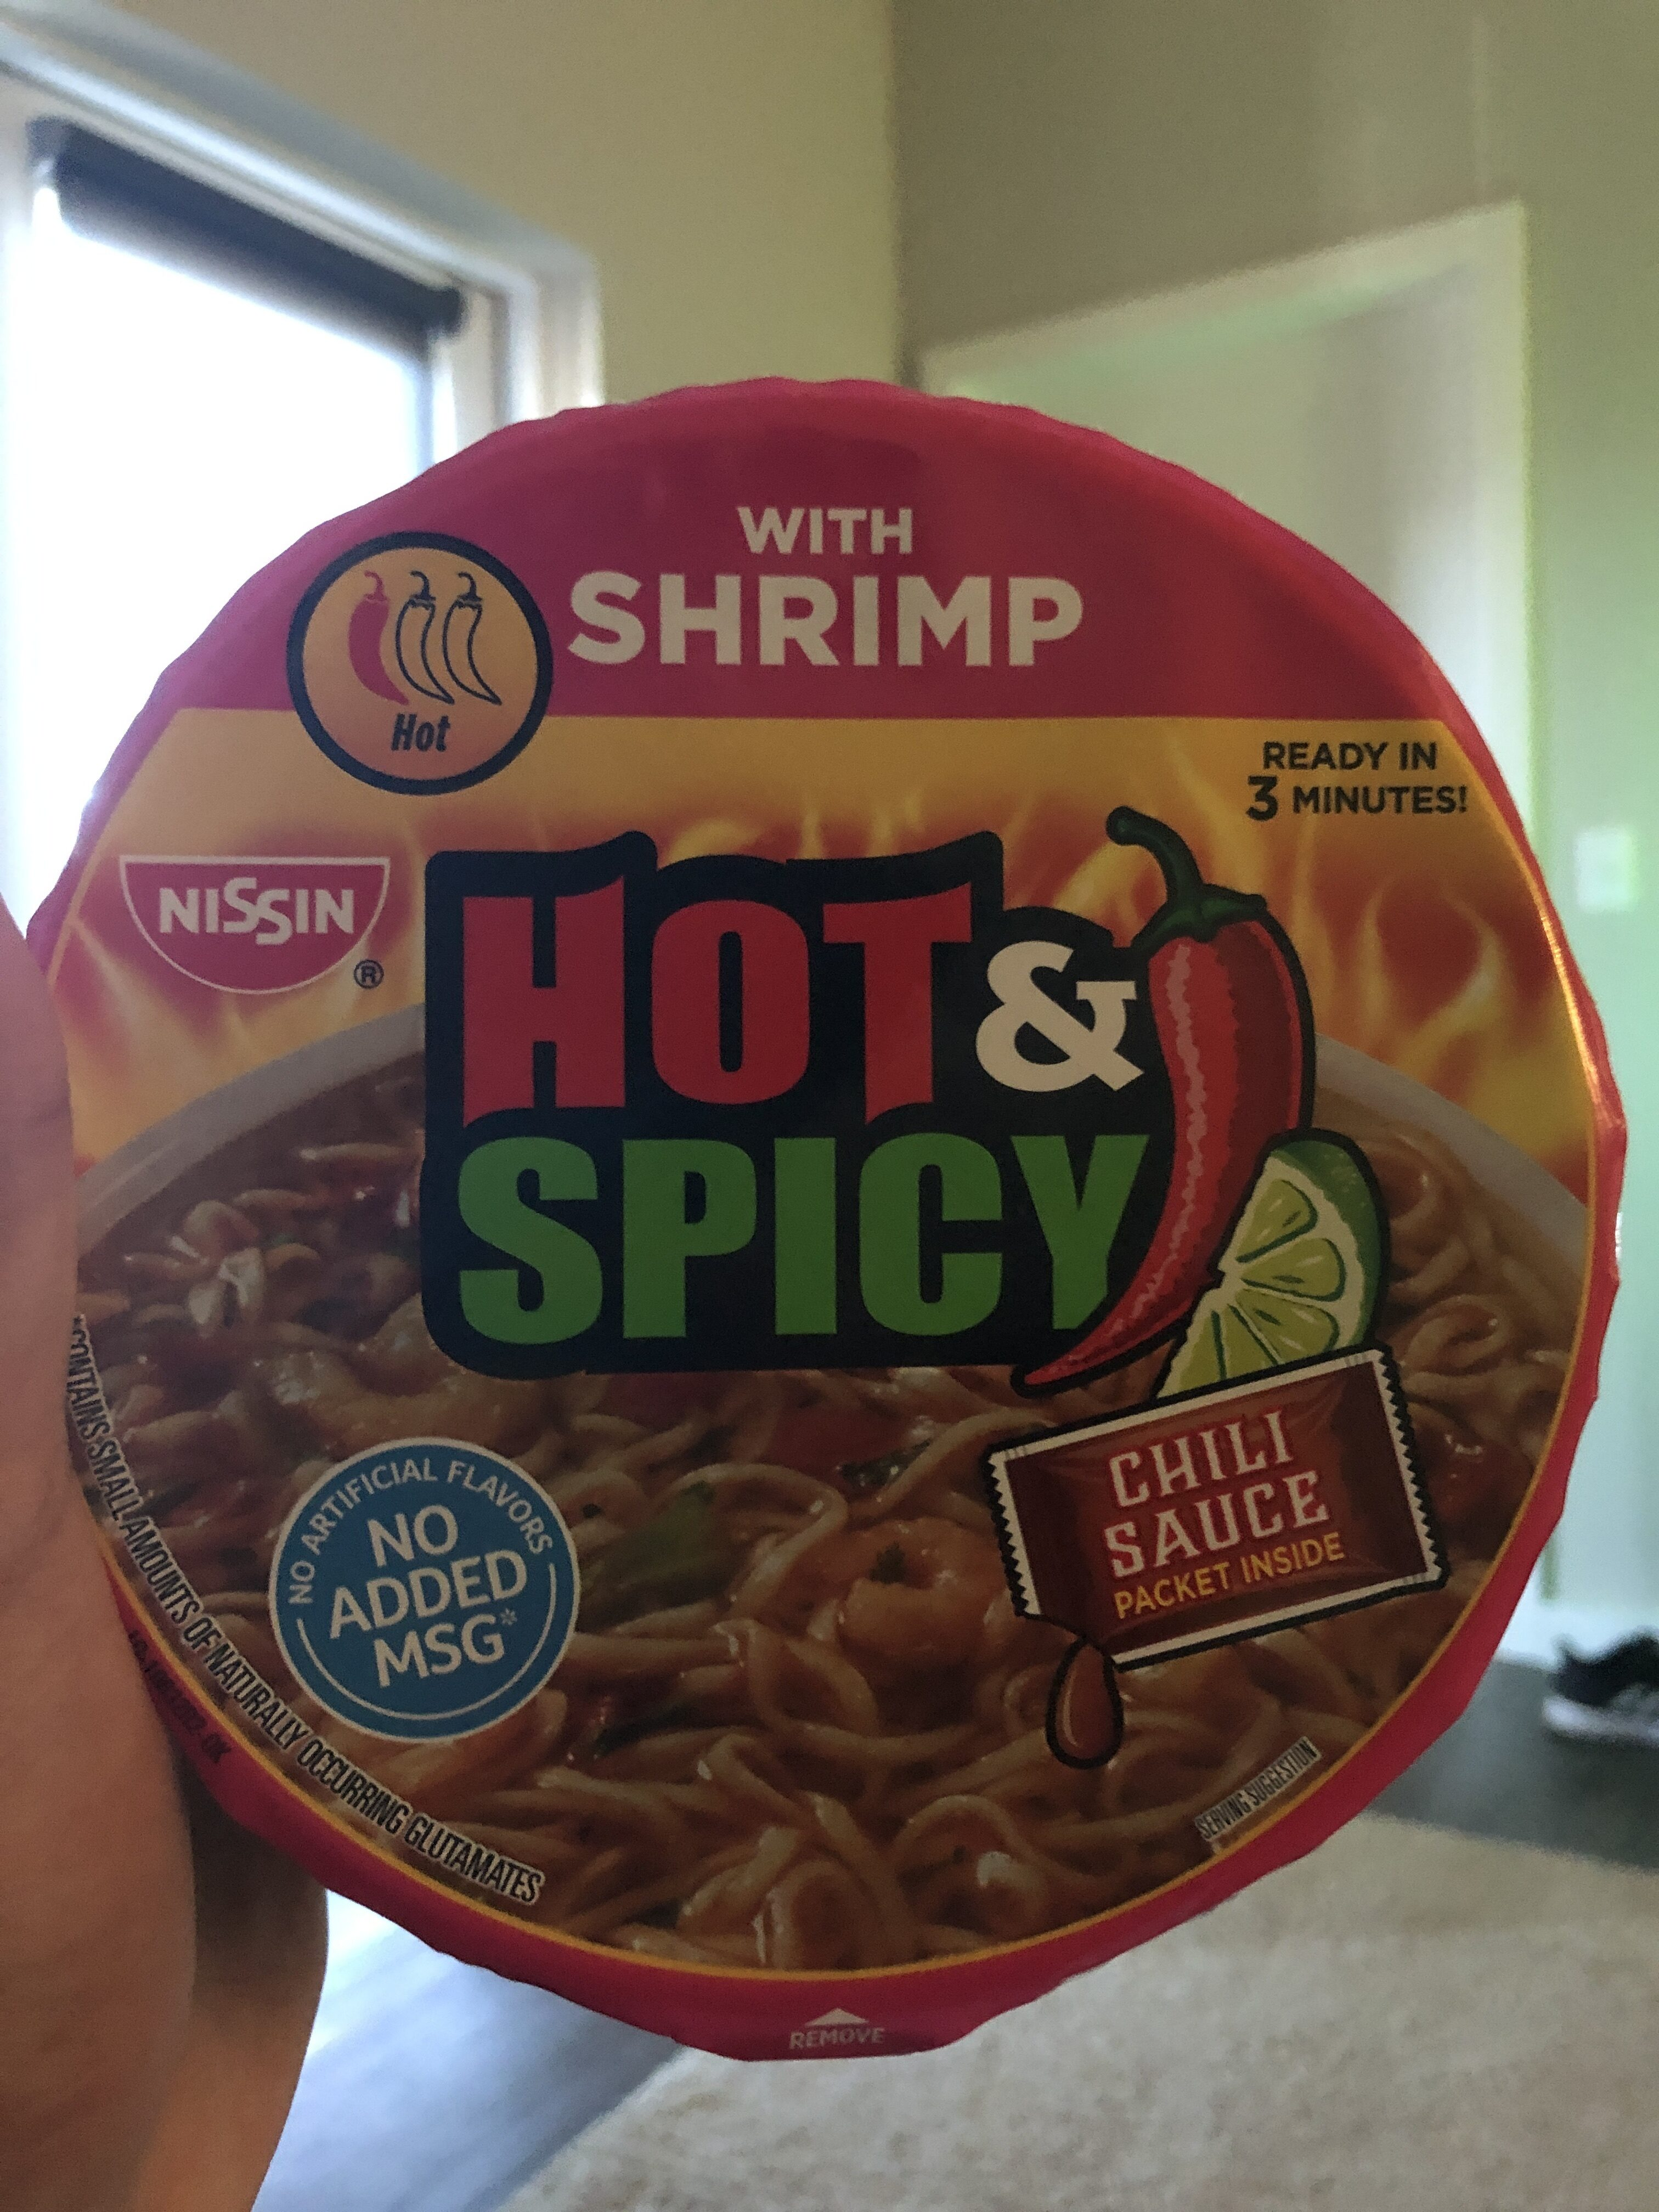 Bowl Noodles, Ramen Noodle Soup With Shrimp, Hot & Spicy - Product